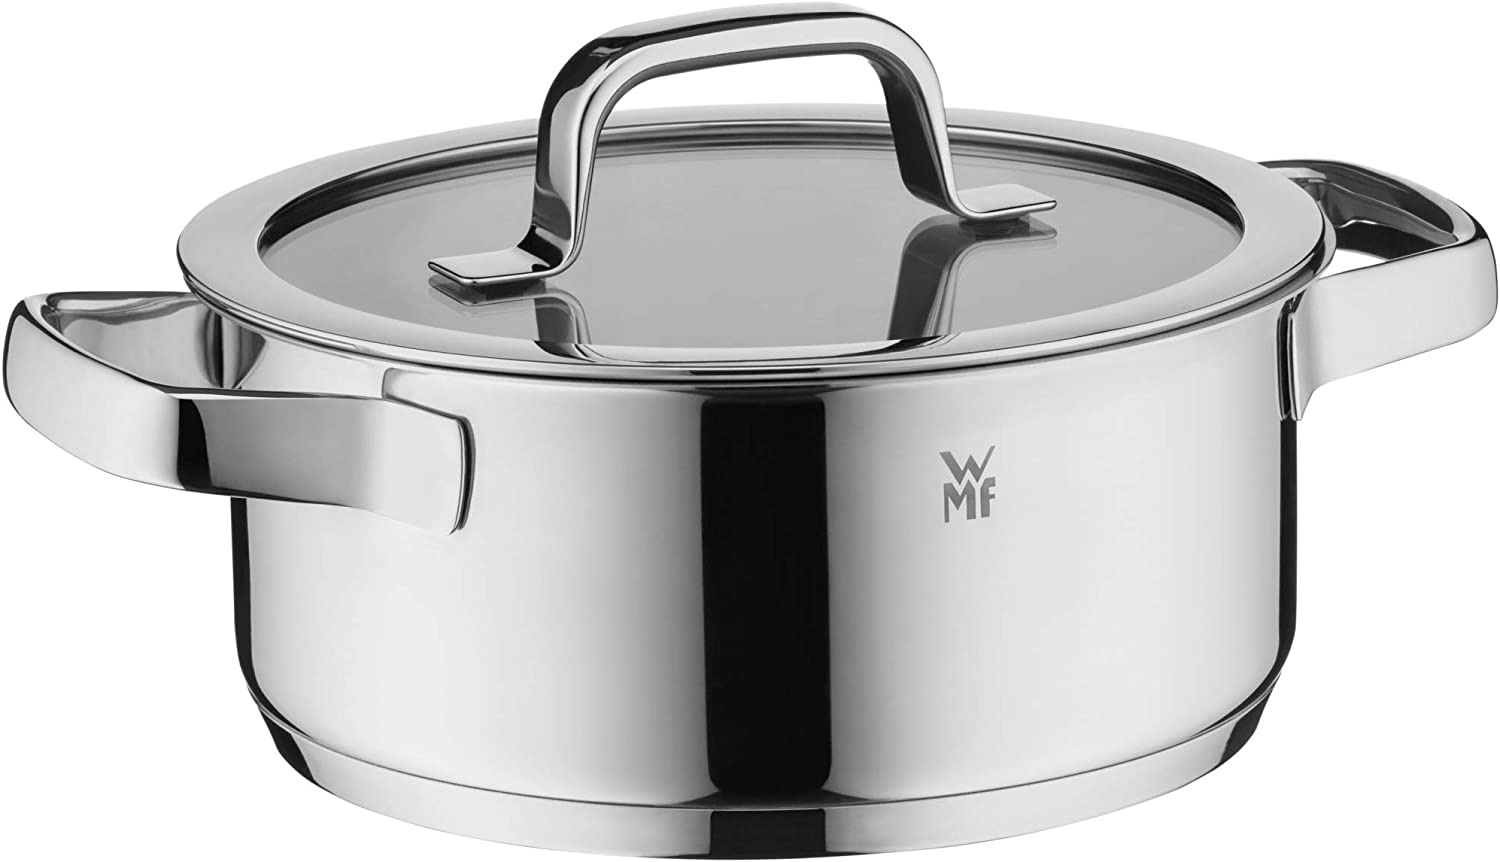 WMF Washington Mall Compact Cuisine Cooking Pot 20 2.5 Free shipping on posting reviews Stewing Lid Glass cm